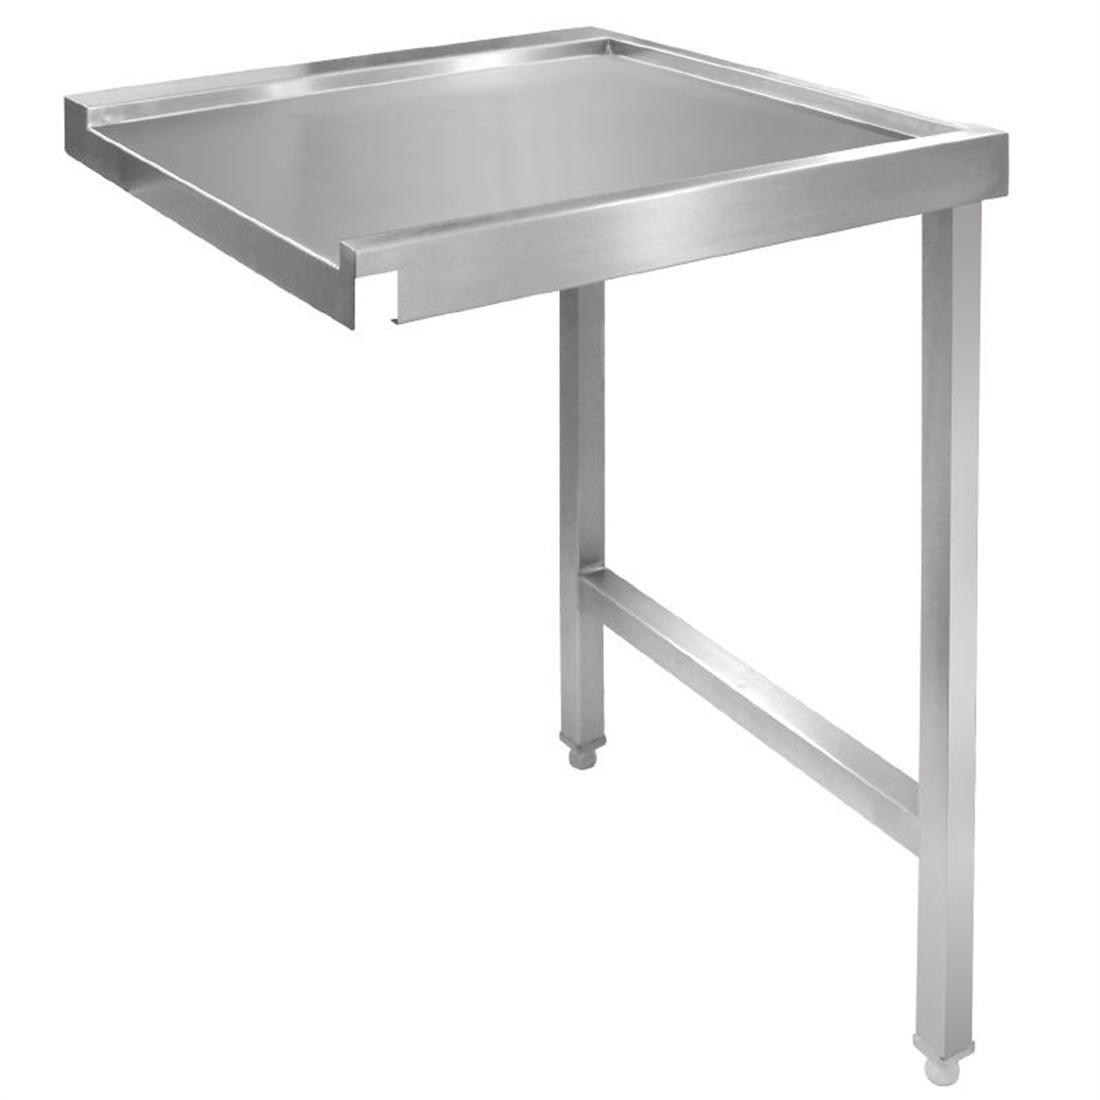 Vogue Pass Through Dishwash Table Right 1100mm - Each - GJ536